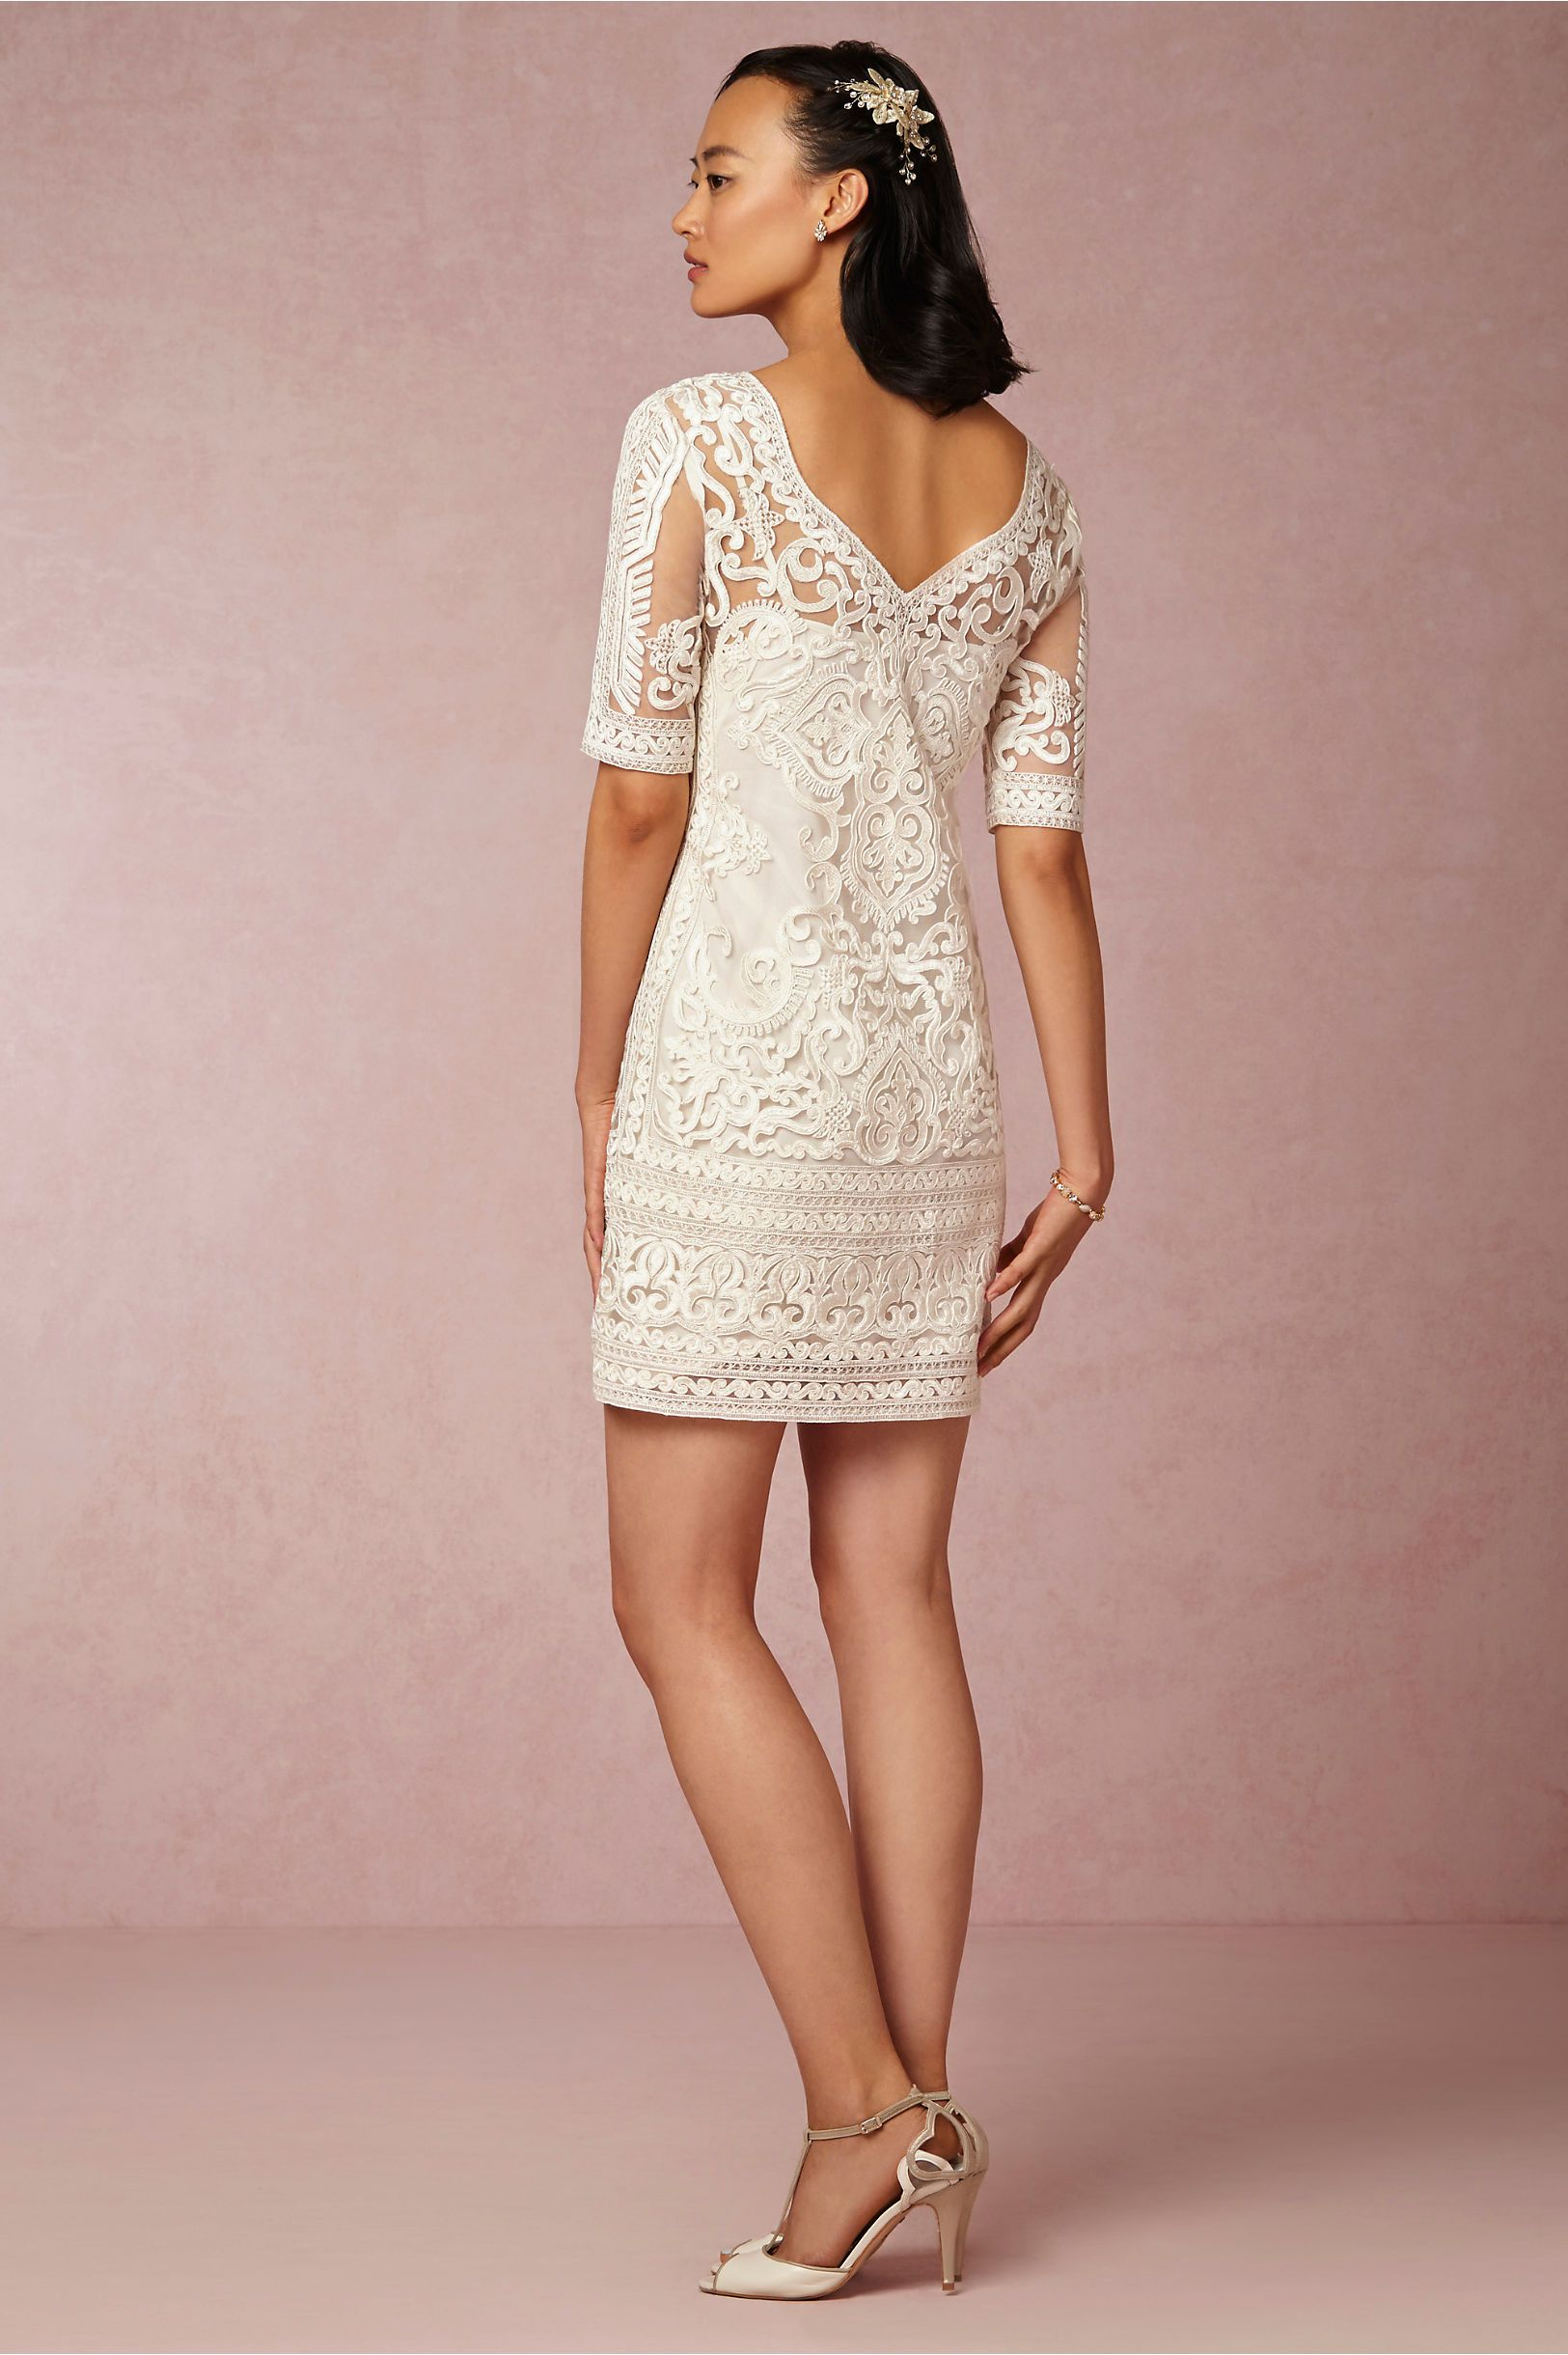 Marcía Dress in Sale at BHLDN | If I must Wear White | Pinterest